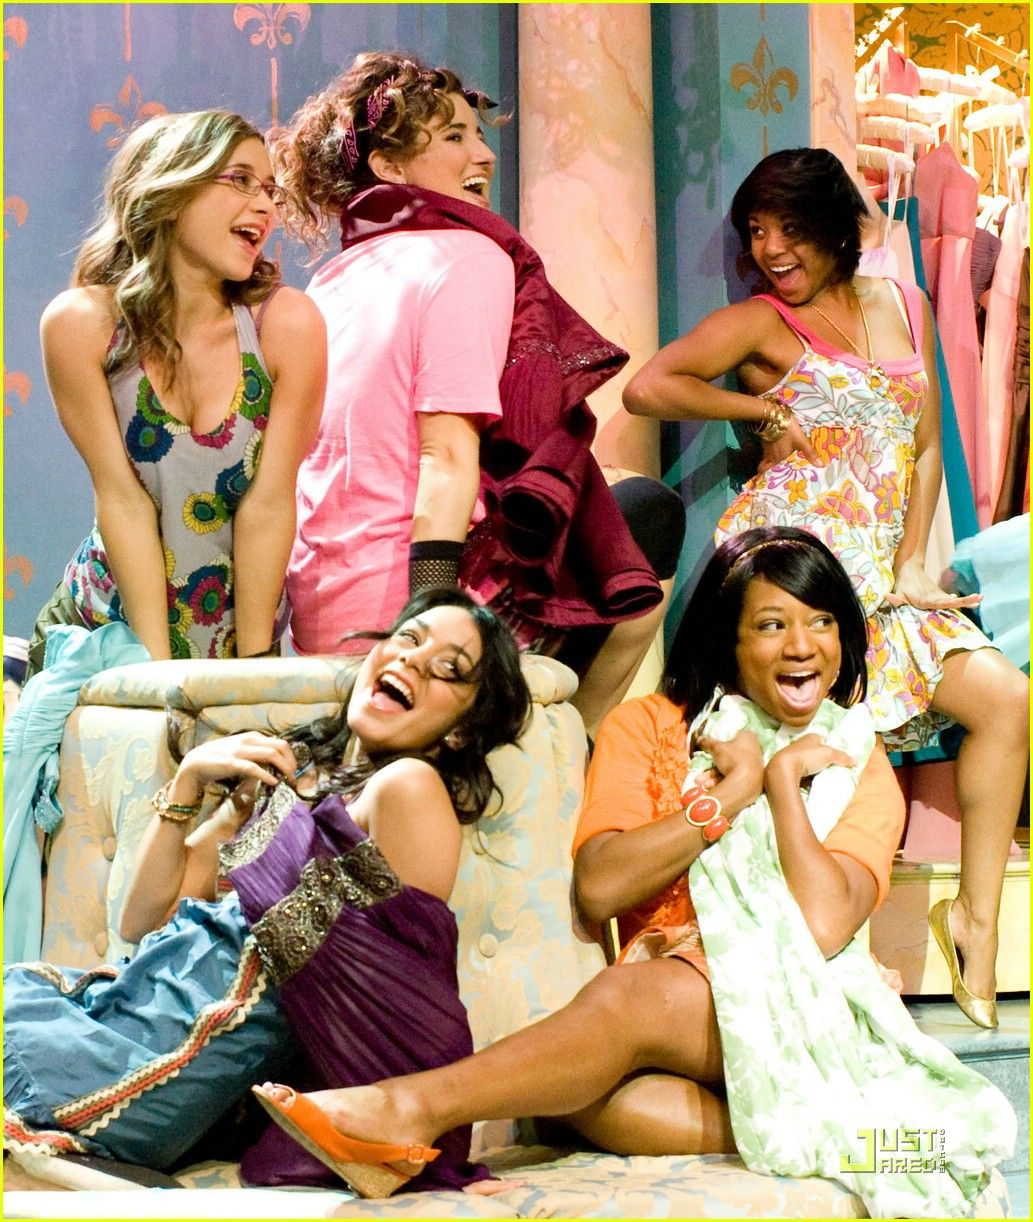 hsm3 hsm3 movie stills new ashley tisdale corbin